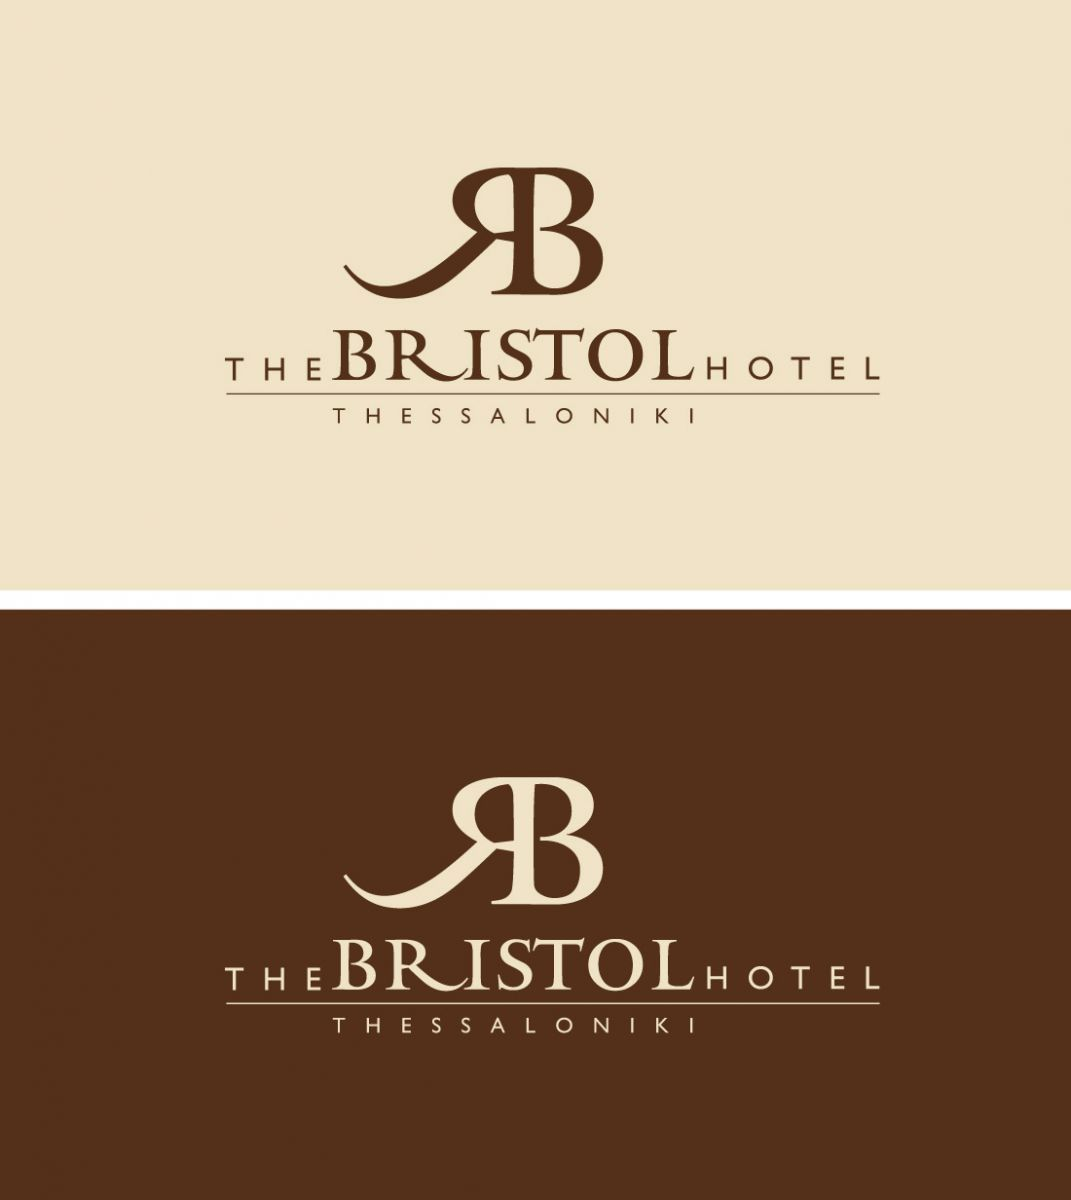 Boutique hotel logos google search gd151 research for Boutique hotel logo